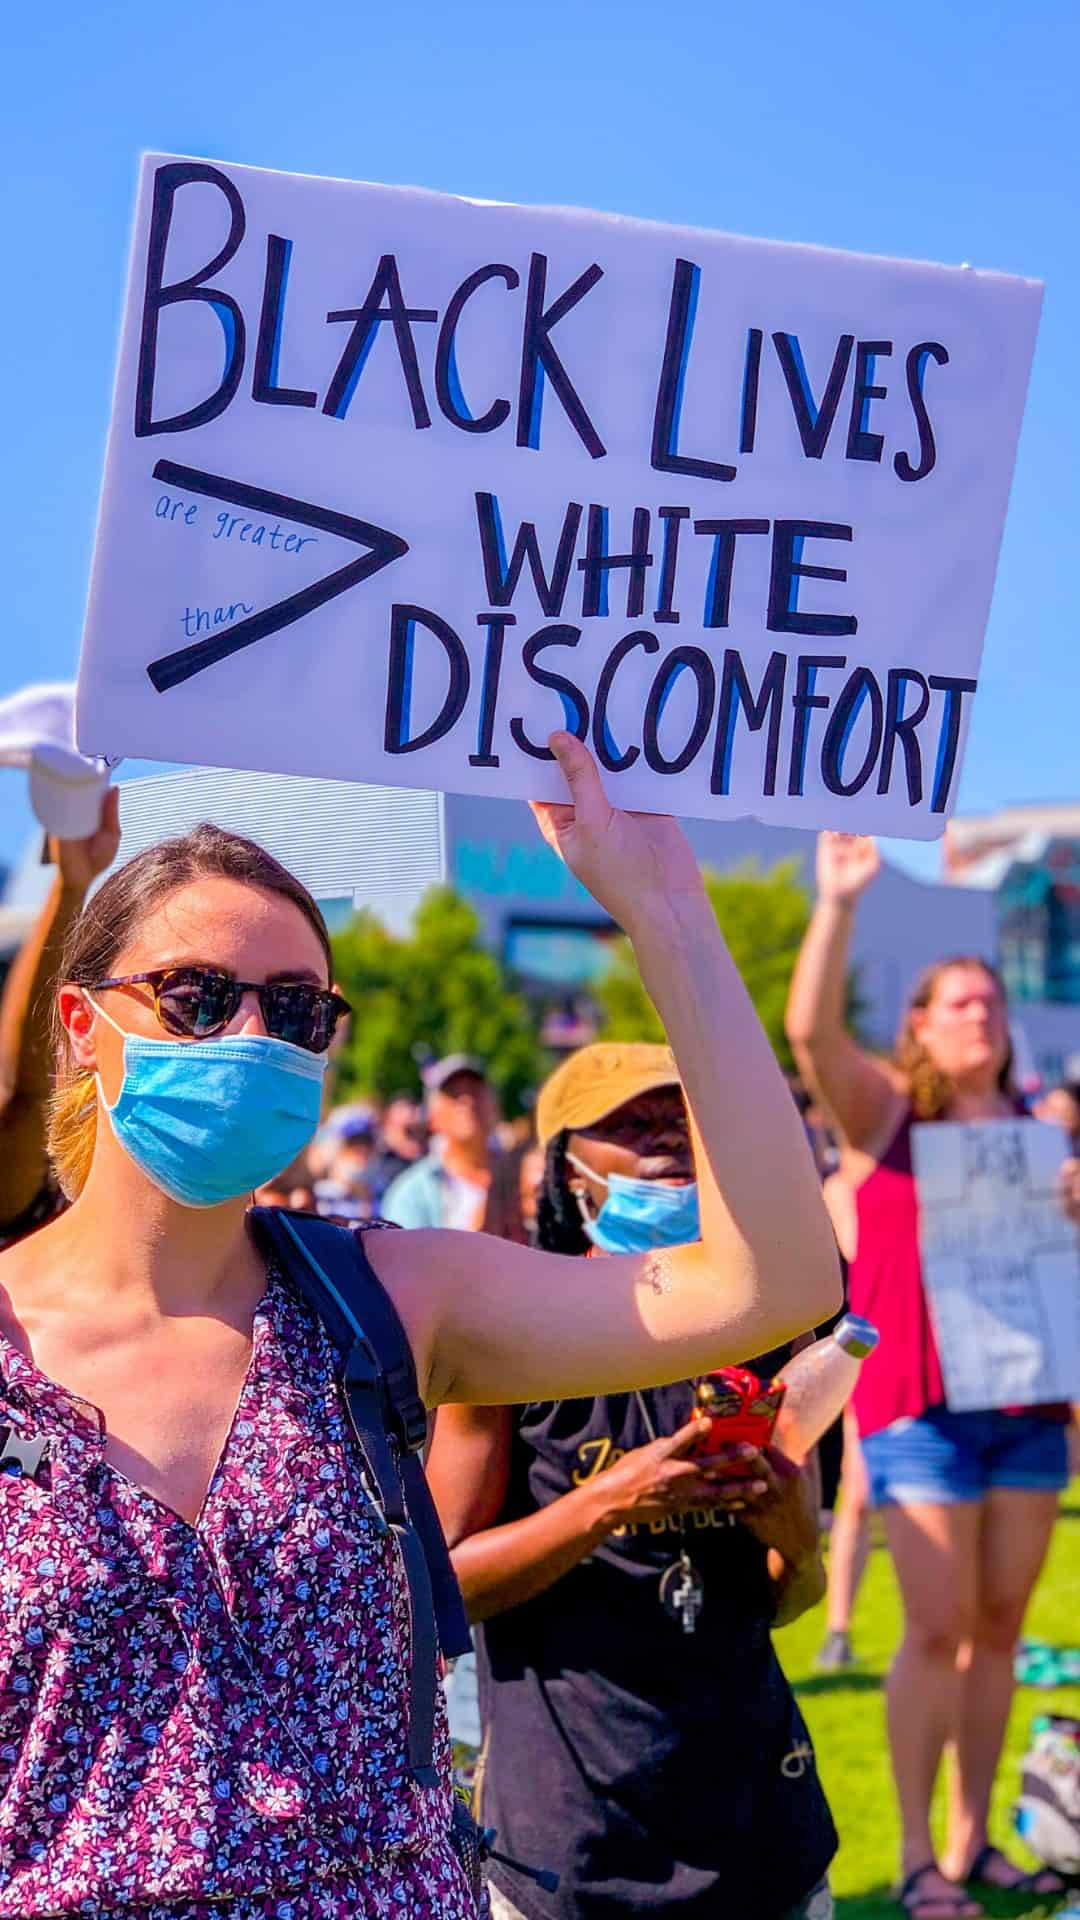 Black lives are greater than what discomfort protest sign